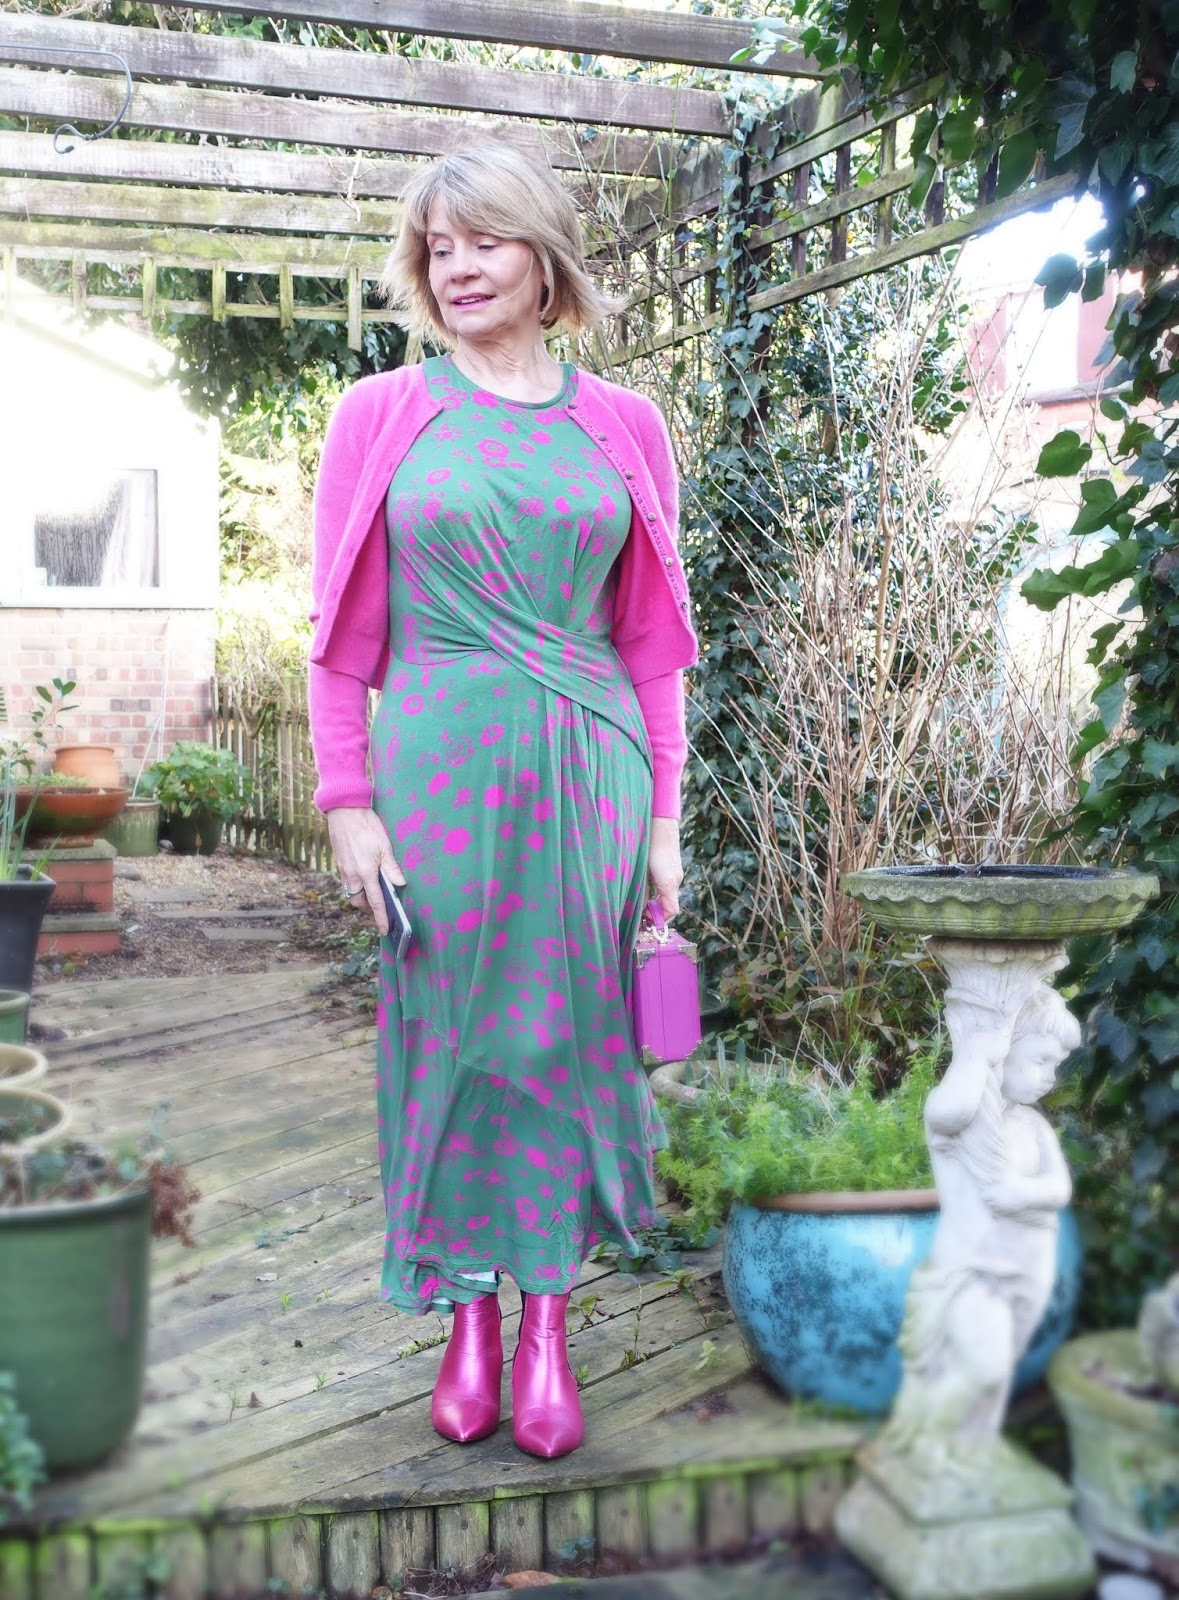 Gail Hanlon from over 50s style blog Is This Mutton? in midi length green and pink patterned dress, pink cardigan and pink metallic boots